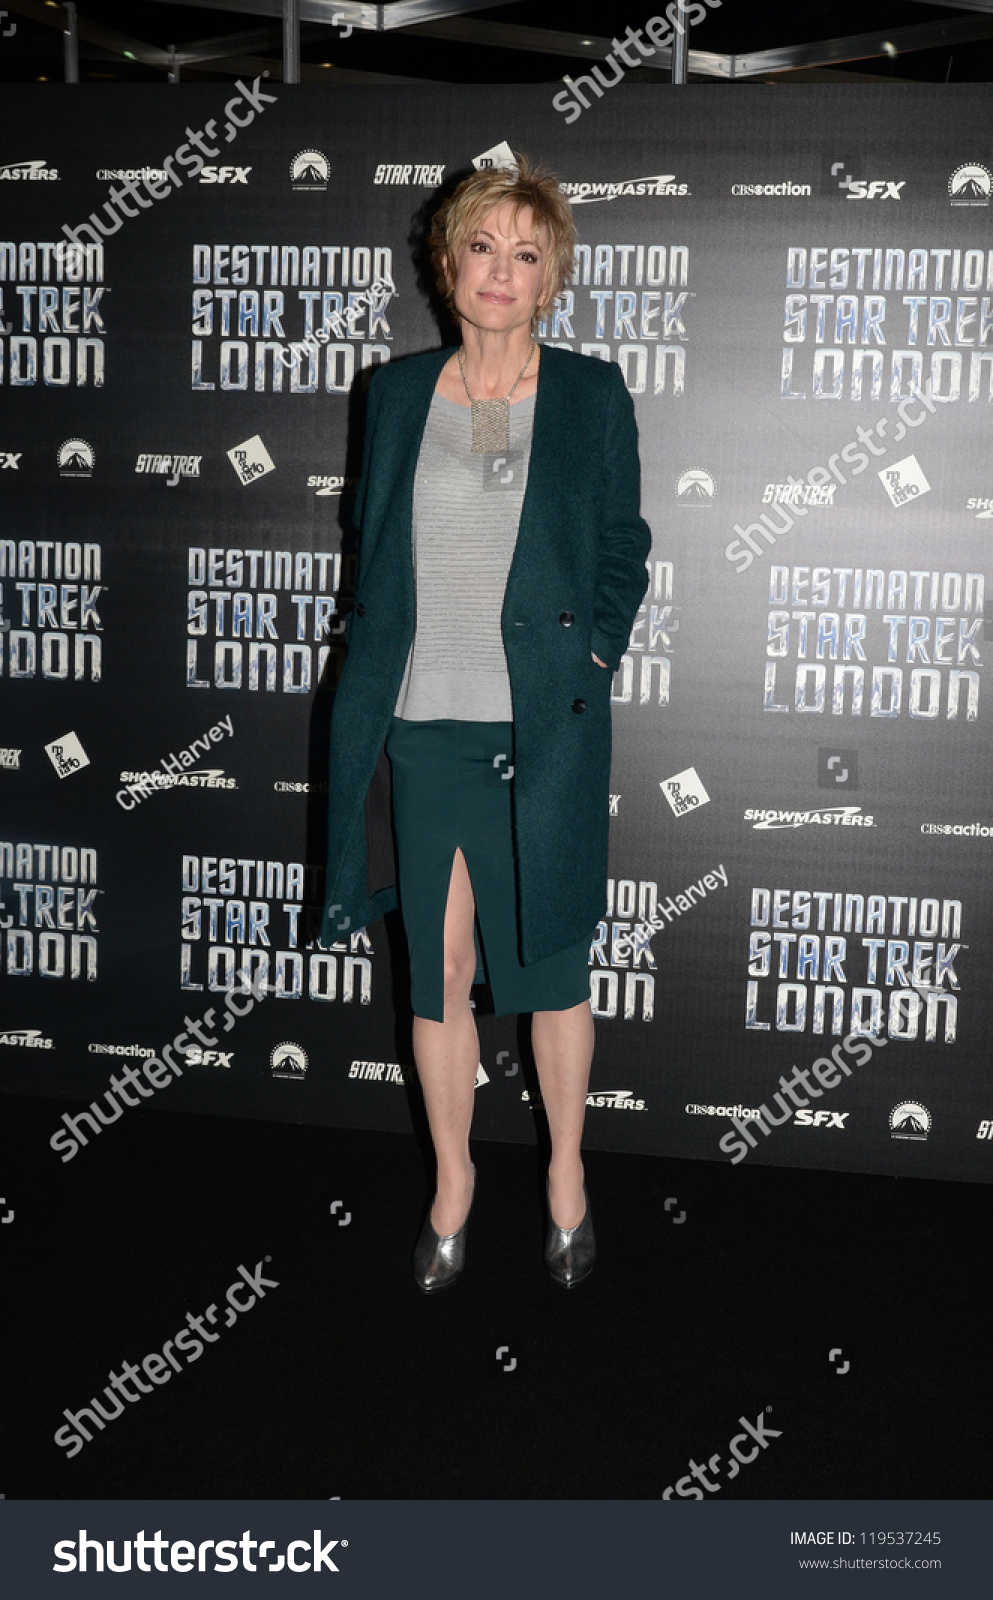 Aryana Starr Pictures Simple london october 19 actor nana visitor stock photo 119537245